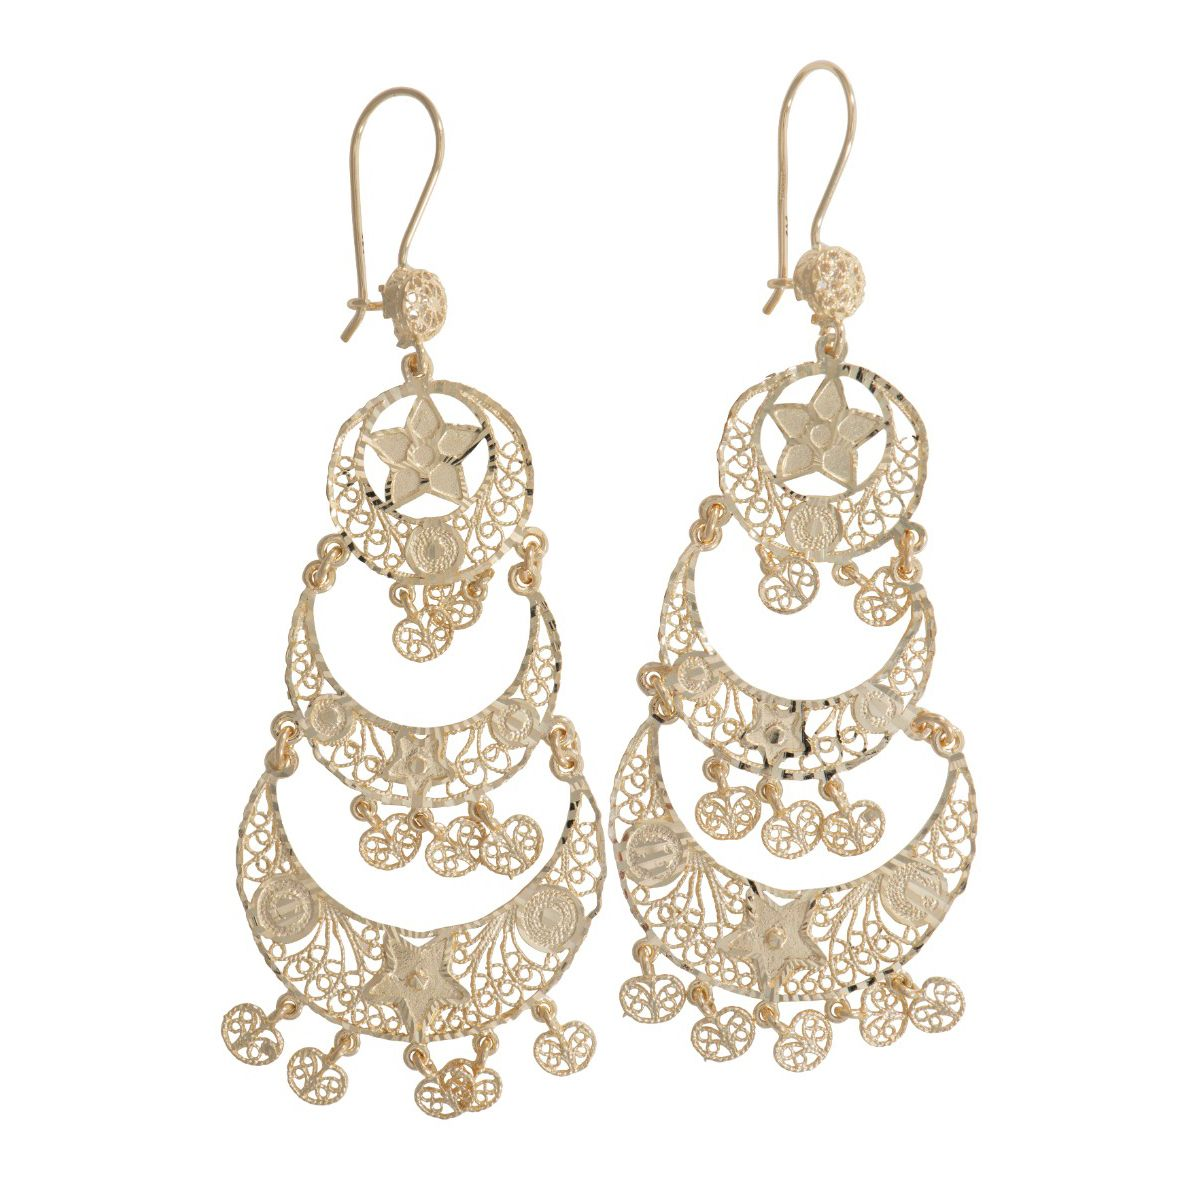 14ct Gold Decorative Dress Cocktail Earrings 85mm